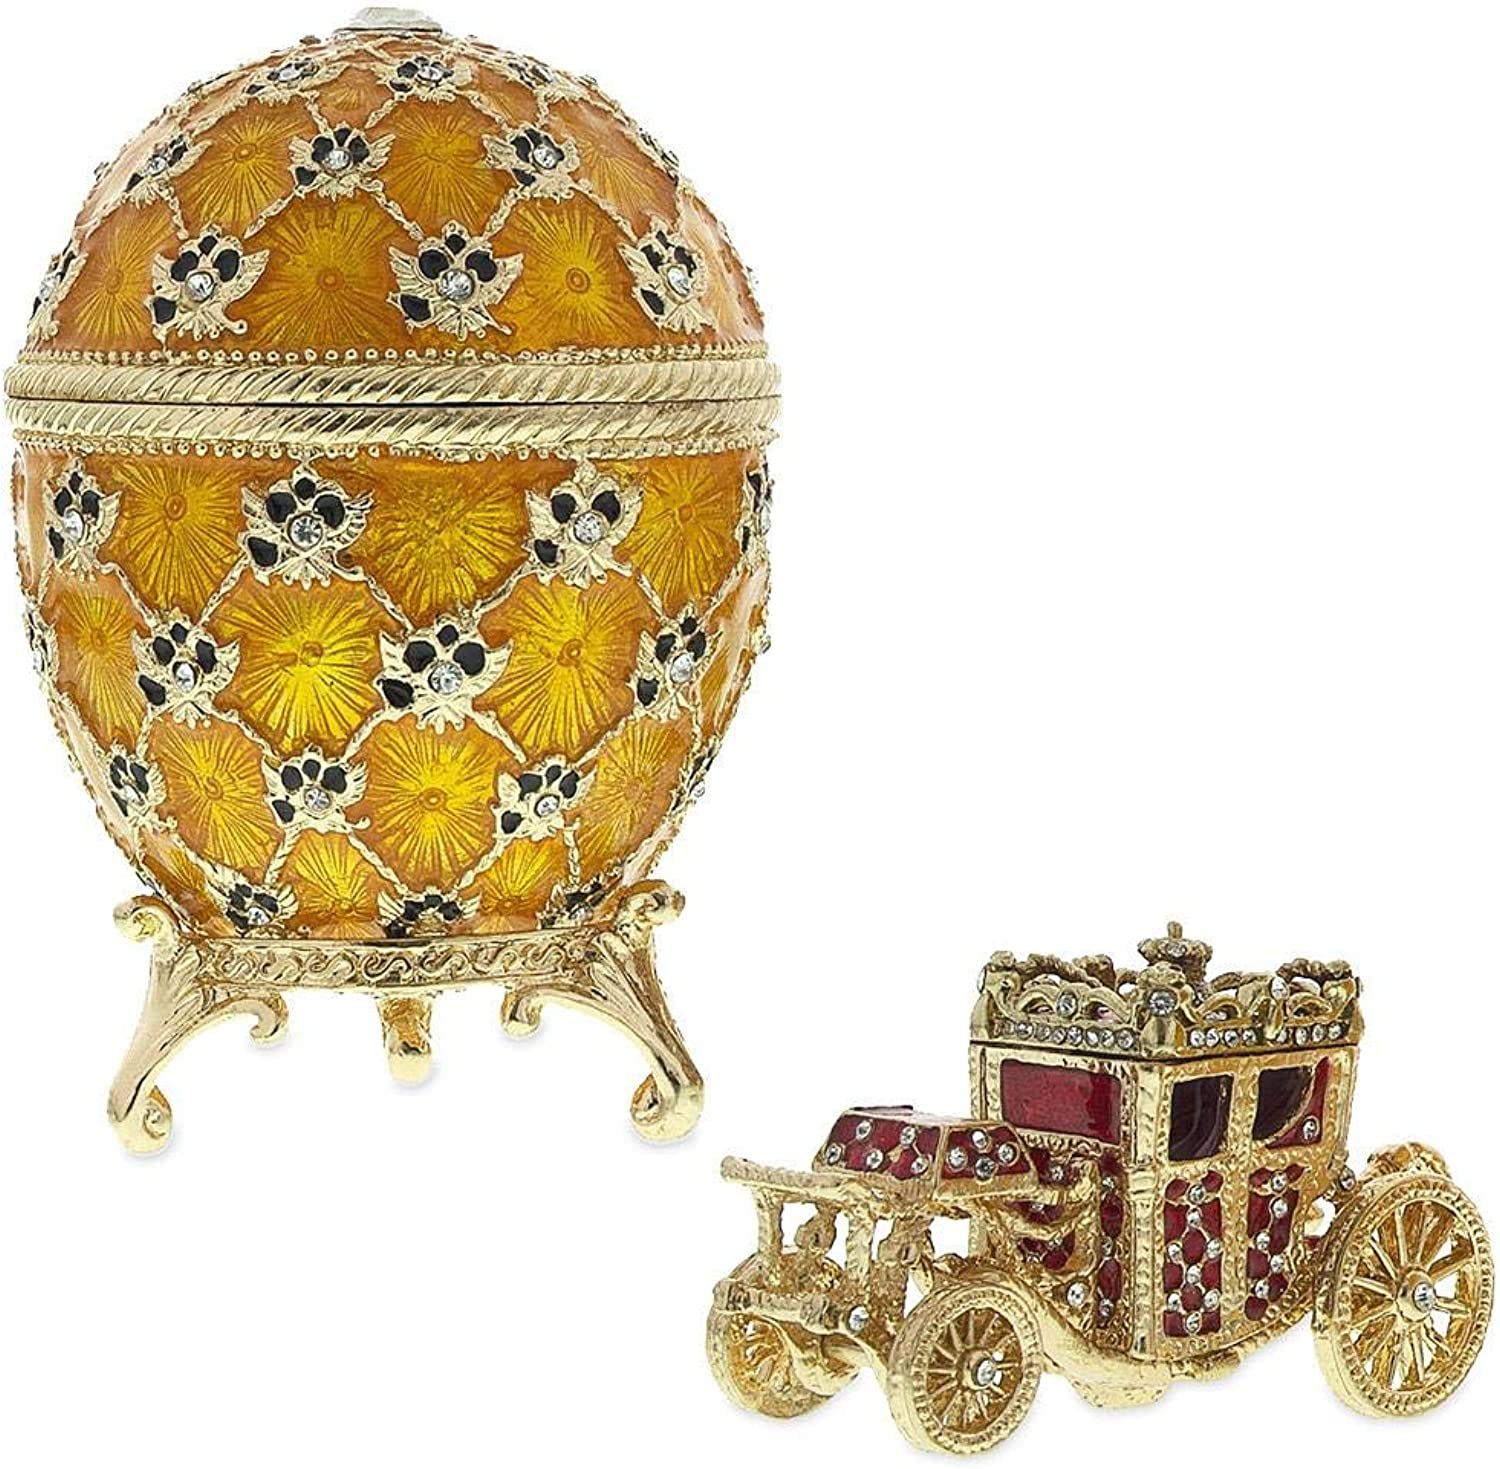 BestPysanky 1897 Cgoldnation Royal Russian Egg 3.8 Inches